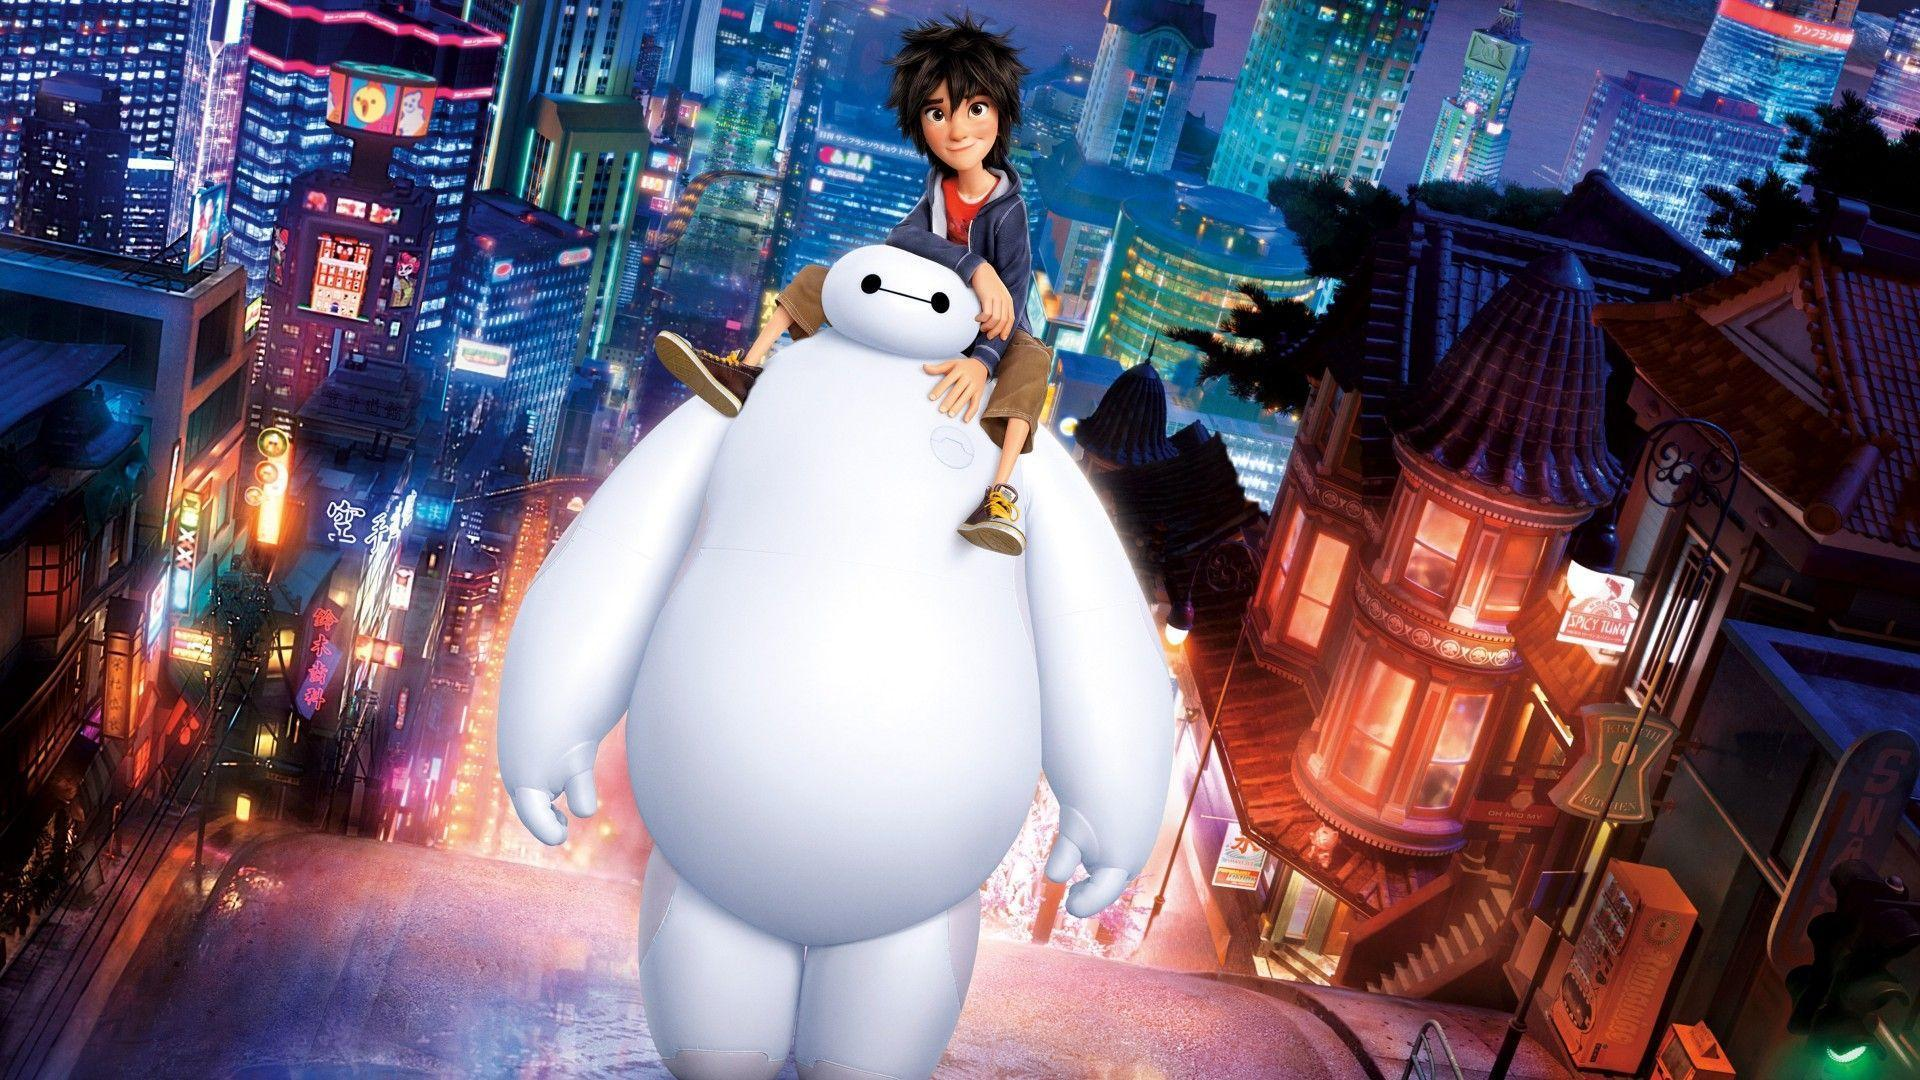 Big Hero 6 Hiro Baymax Wallpapers | HD Wallpapers